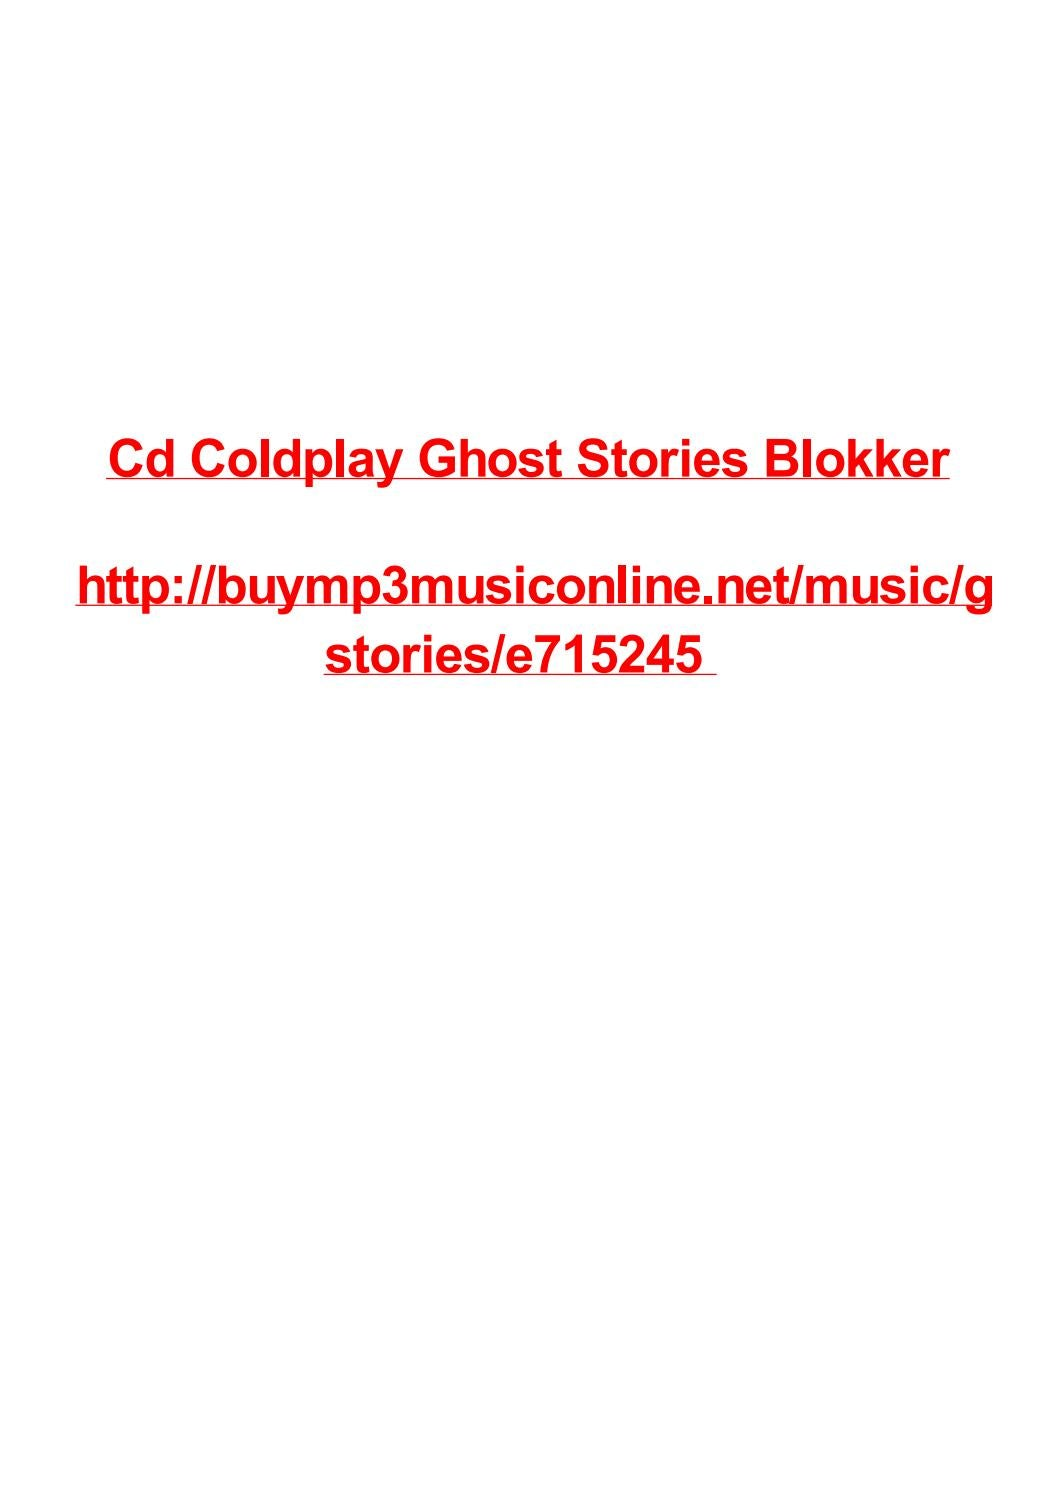 Cd coldplay ghost stories blokker by Max Polansky - issuu